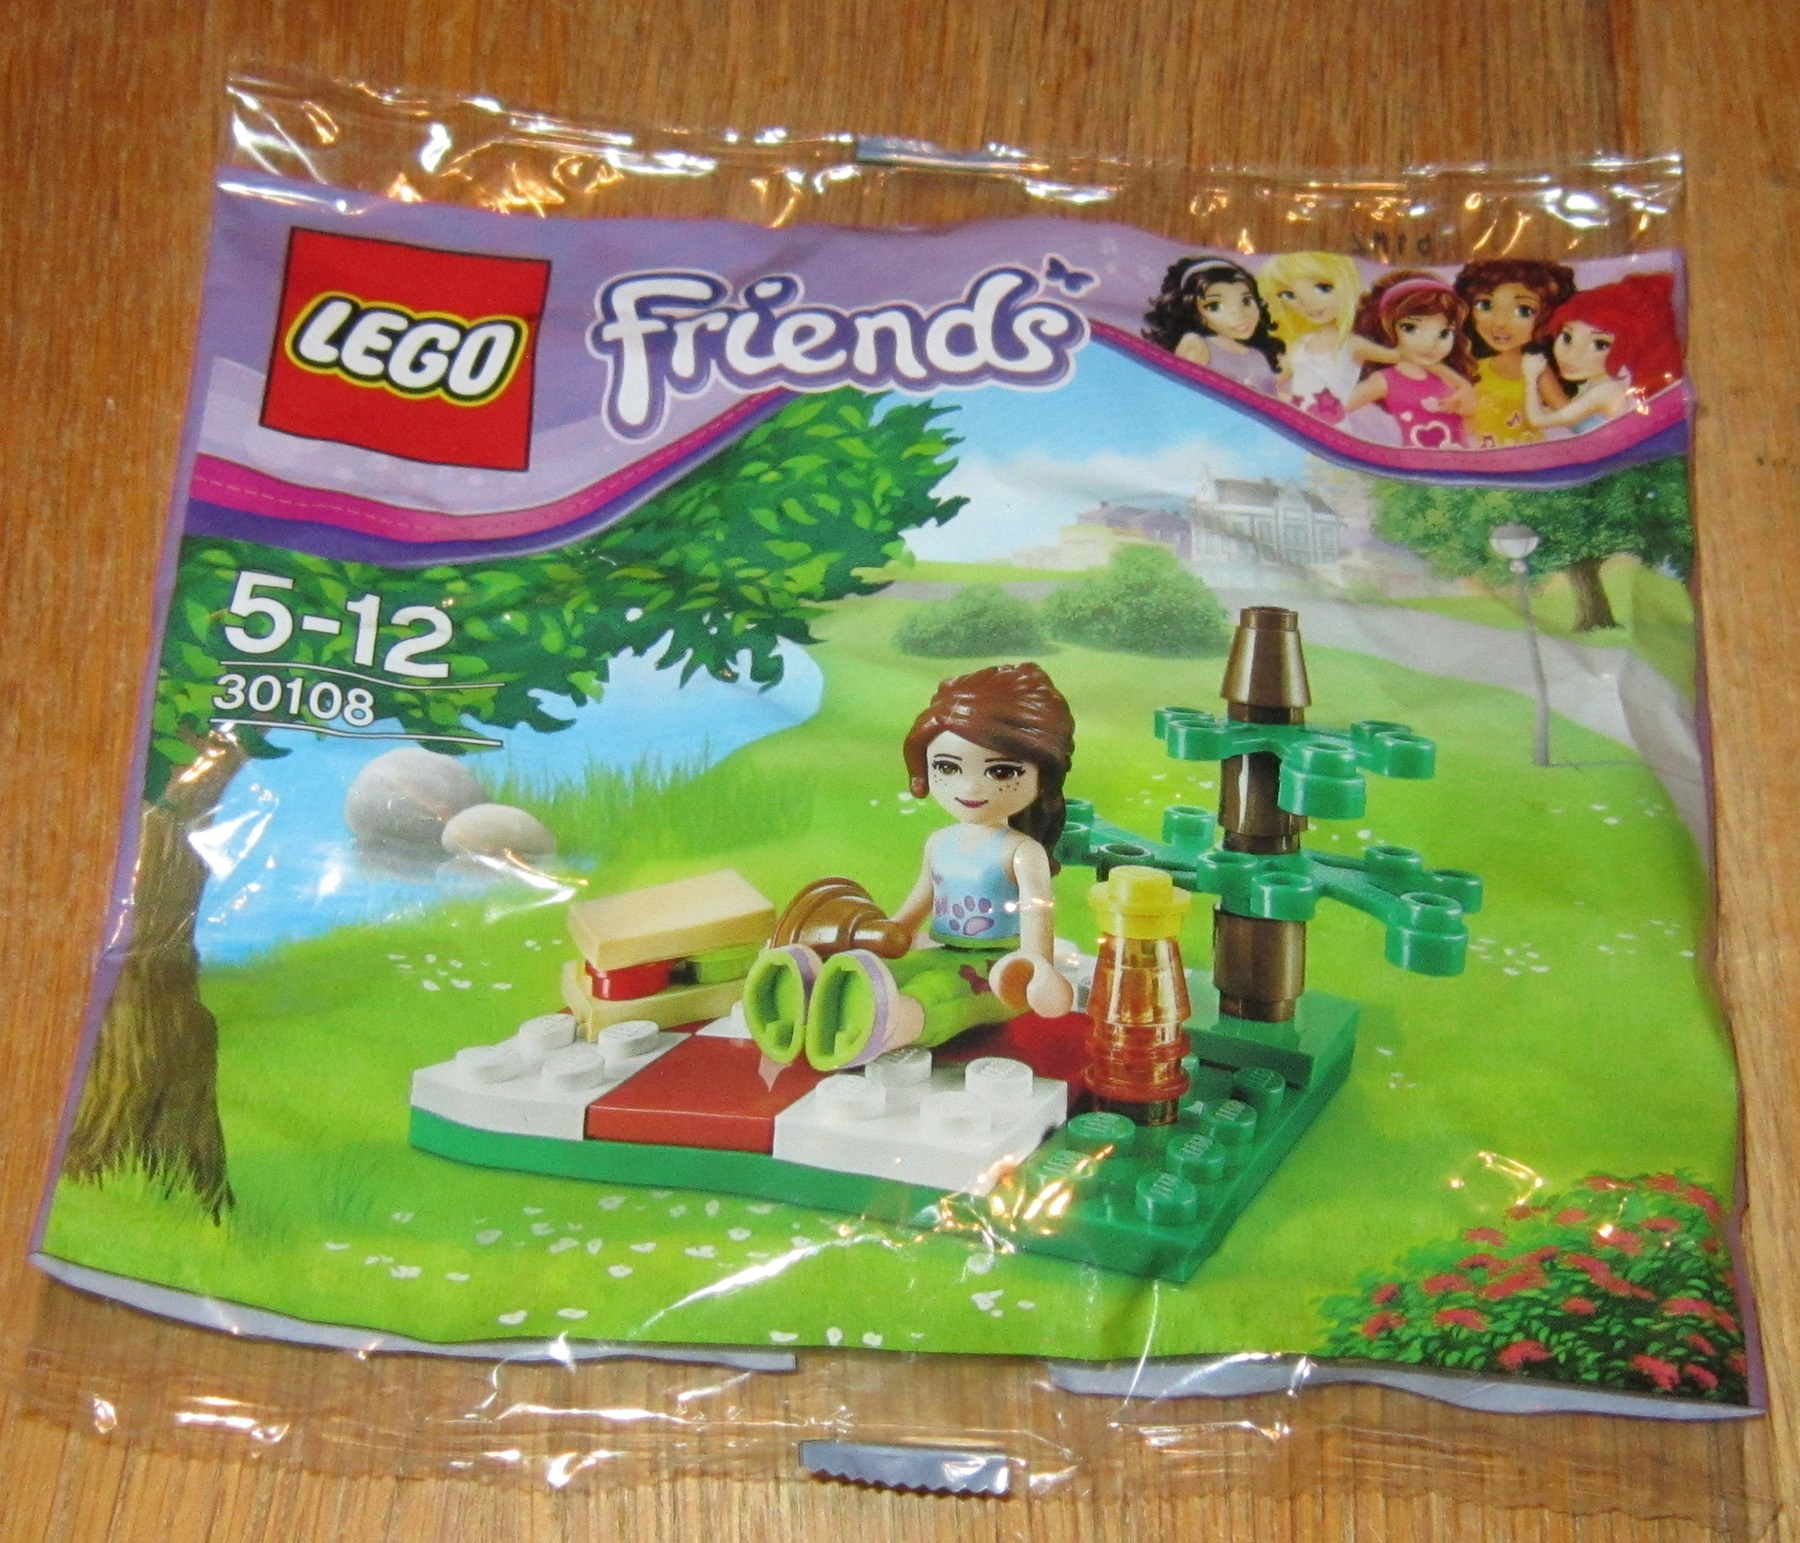 0030 Lego Friends 30108